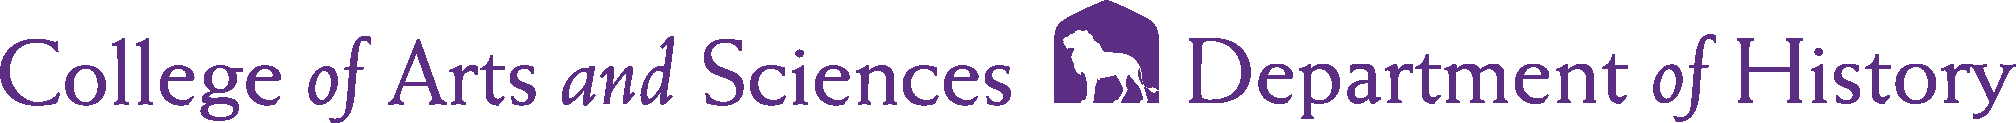 College of Arts and Sciences - History Logo - Purple - Version 2